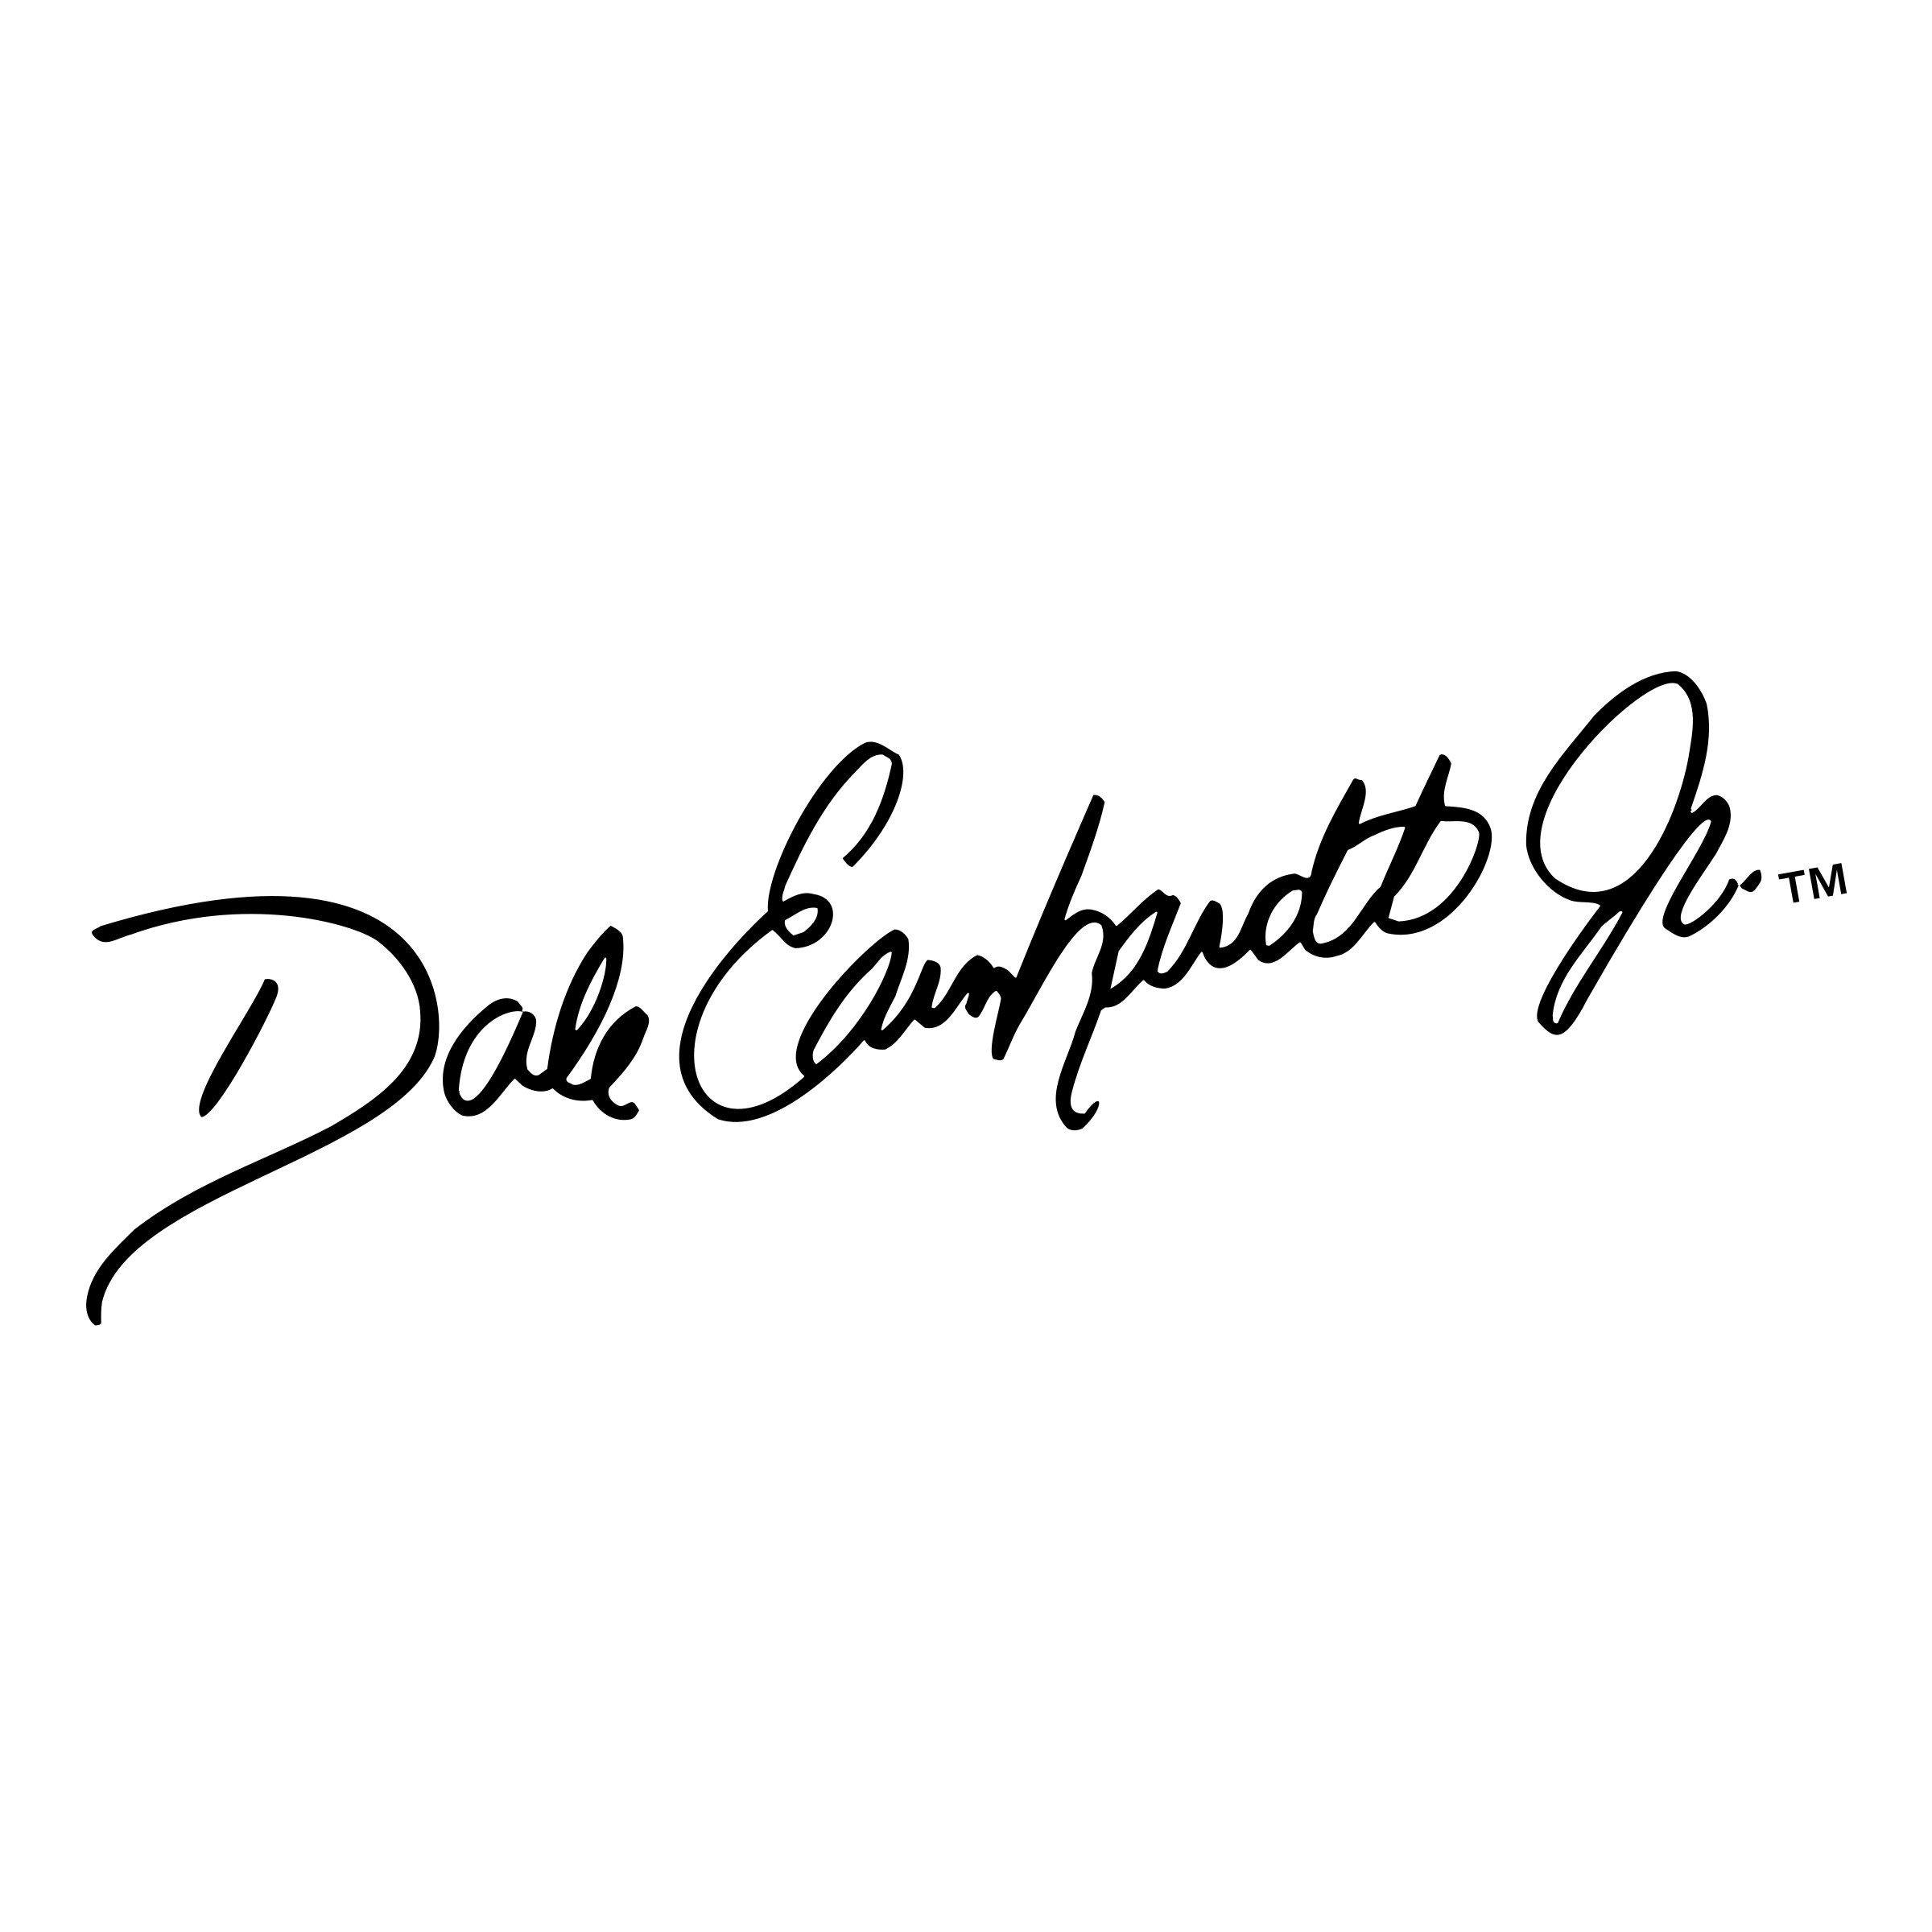 Dale earnhardt jr signature png. Logo transparent svg vector